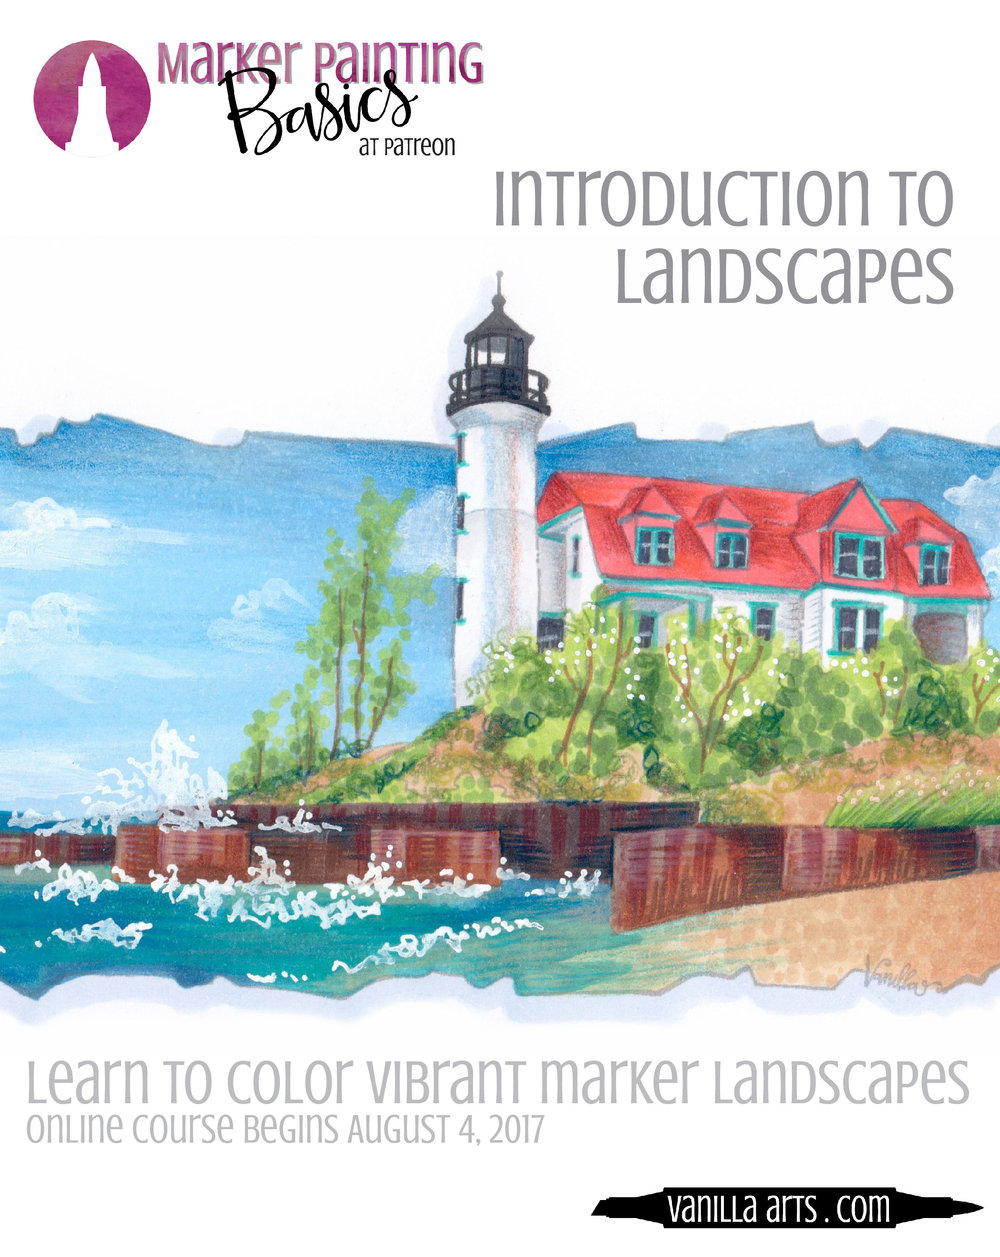 """Point Betsie"" is the August/September 2017 online Copic coloring lesson for Marker Painting Basics. Beginner level class with challenges for intermediate and advanced students. 